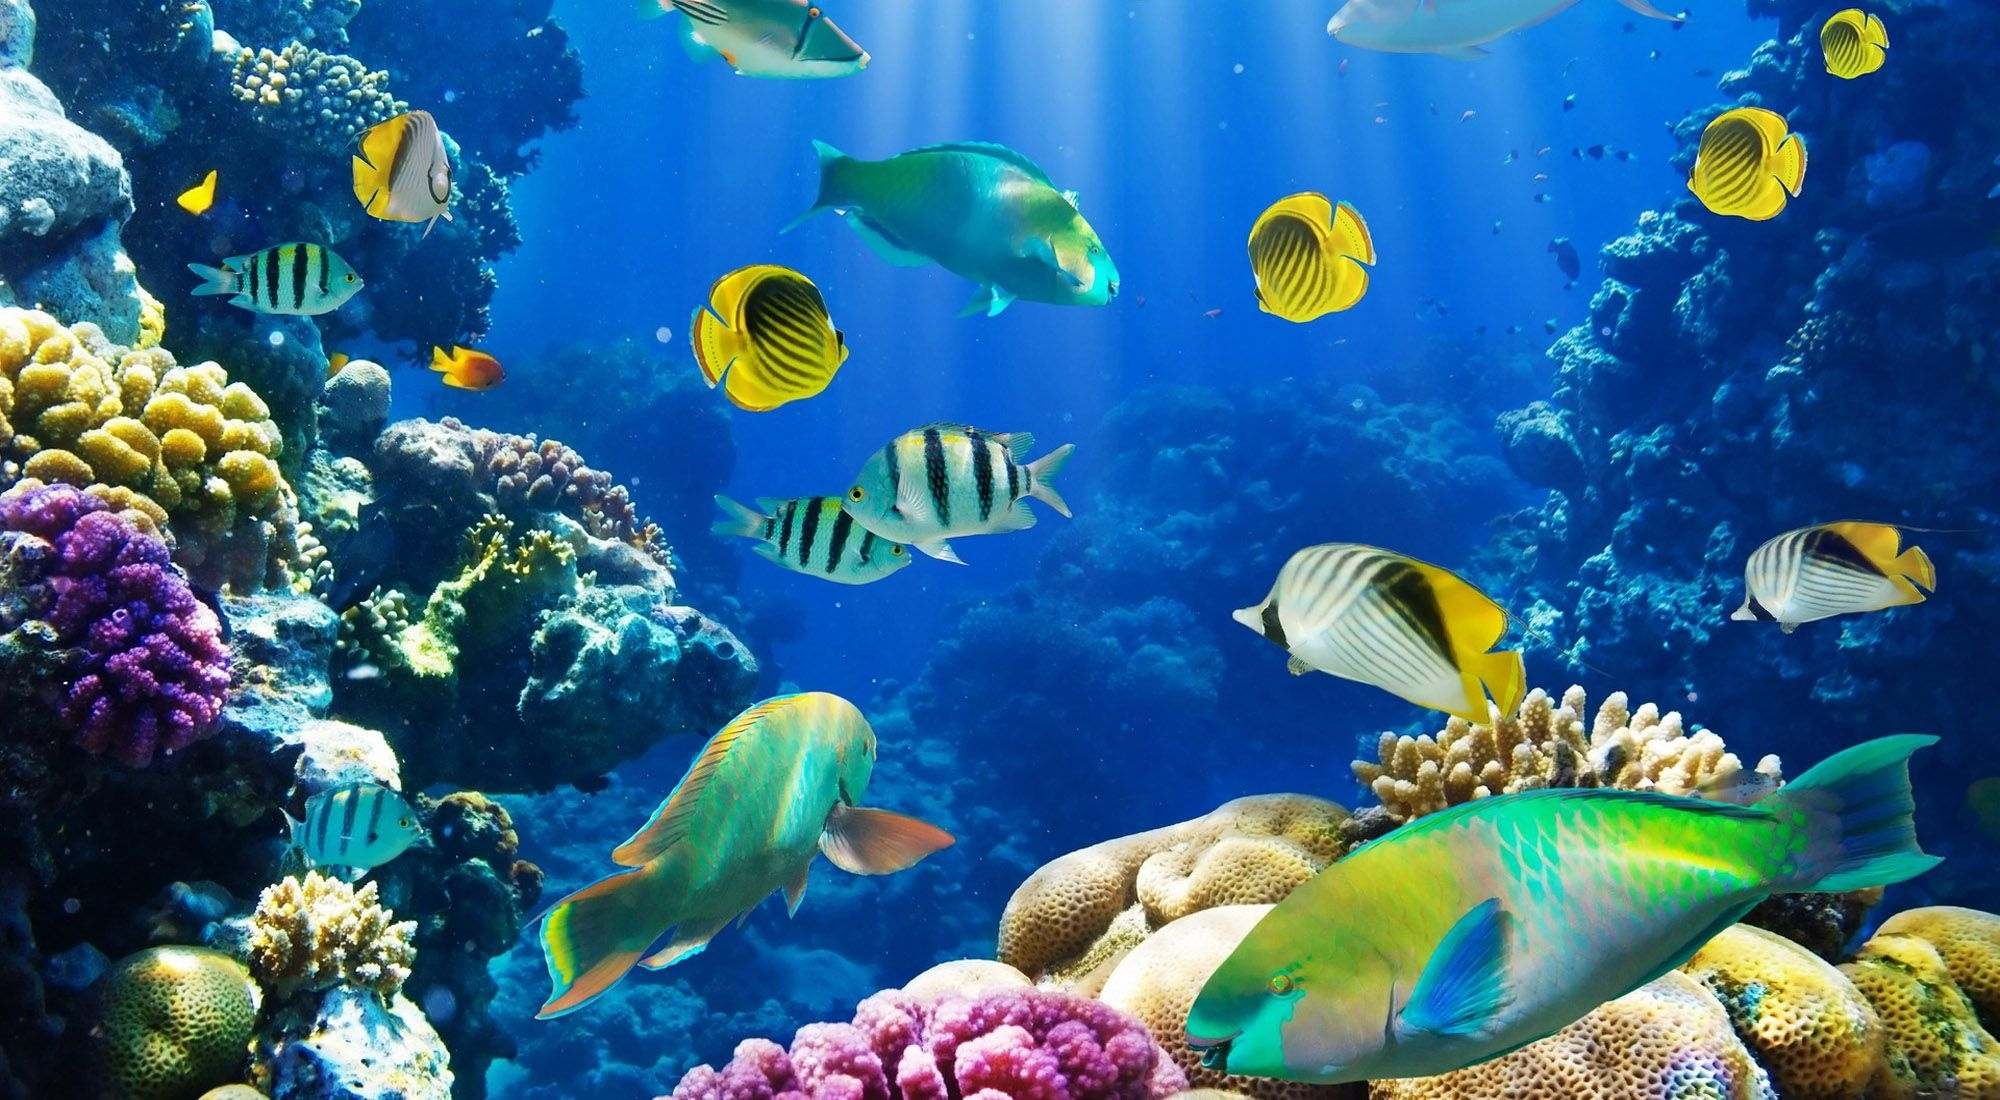 hd fish wallpapers: find best latest hd fish wallpapers in hd for